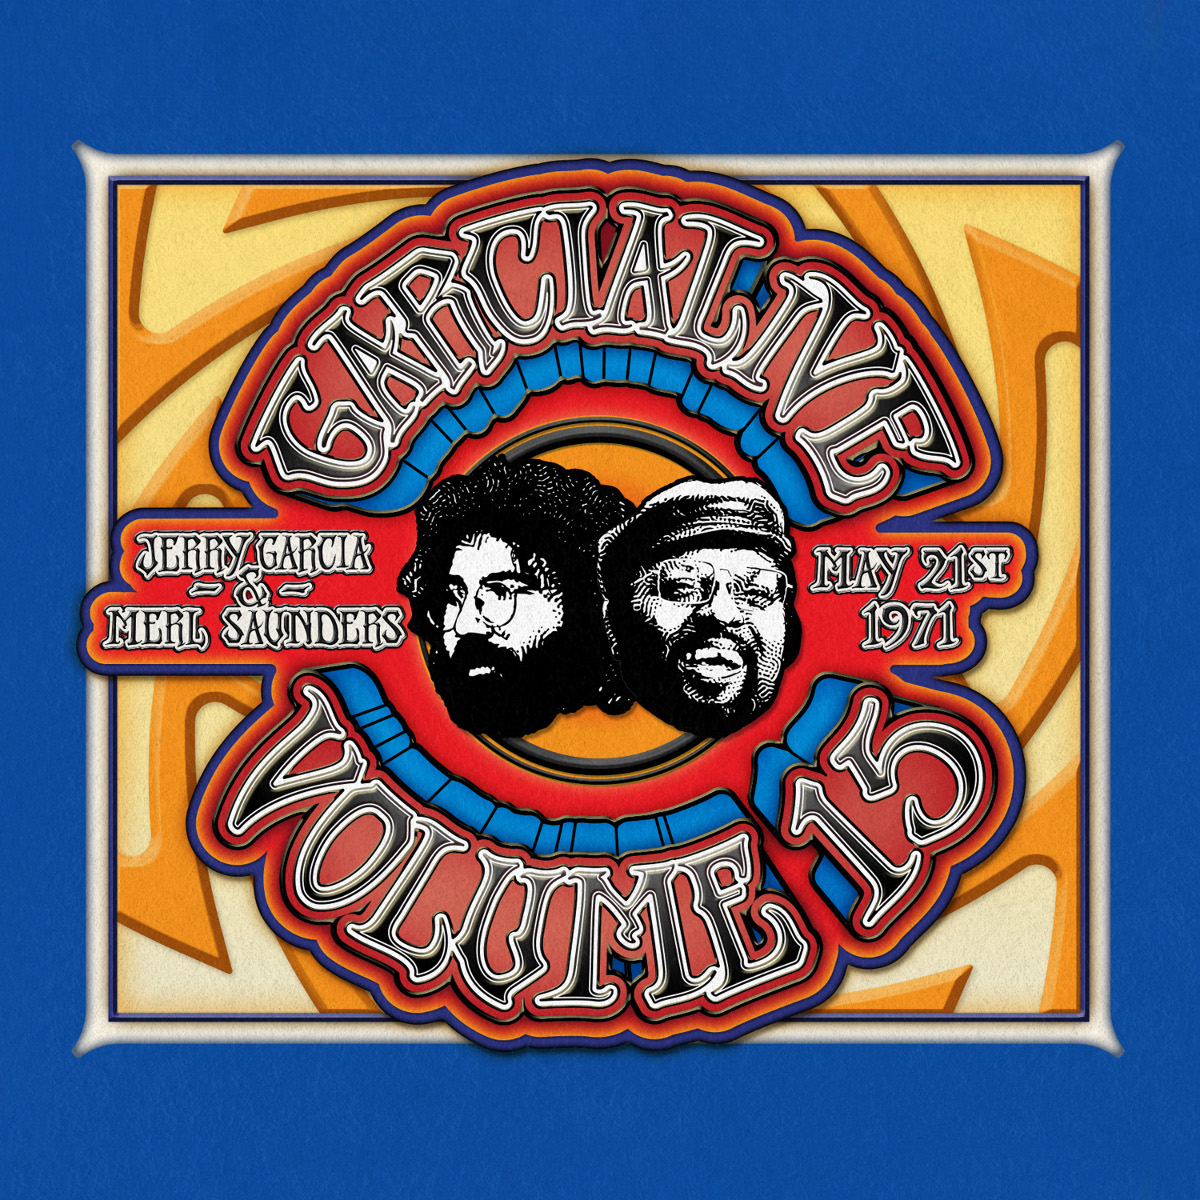 Jerry Garcia & Merl Saunders - GarciaLive Volume 15: 05/21/71 2-CD Set or Digital Download